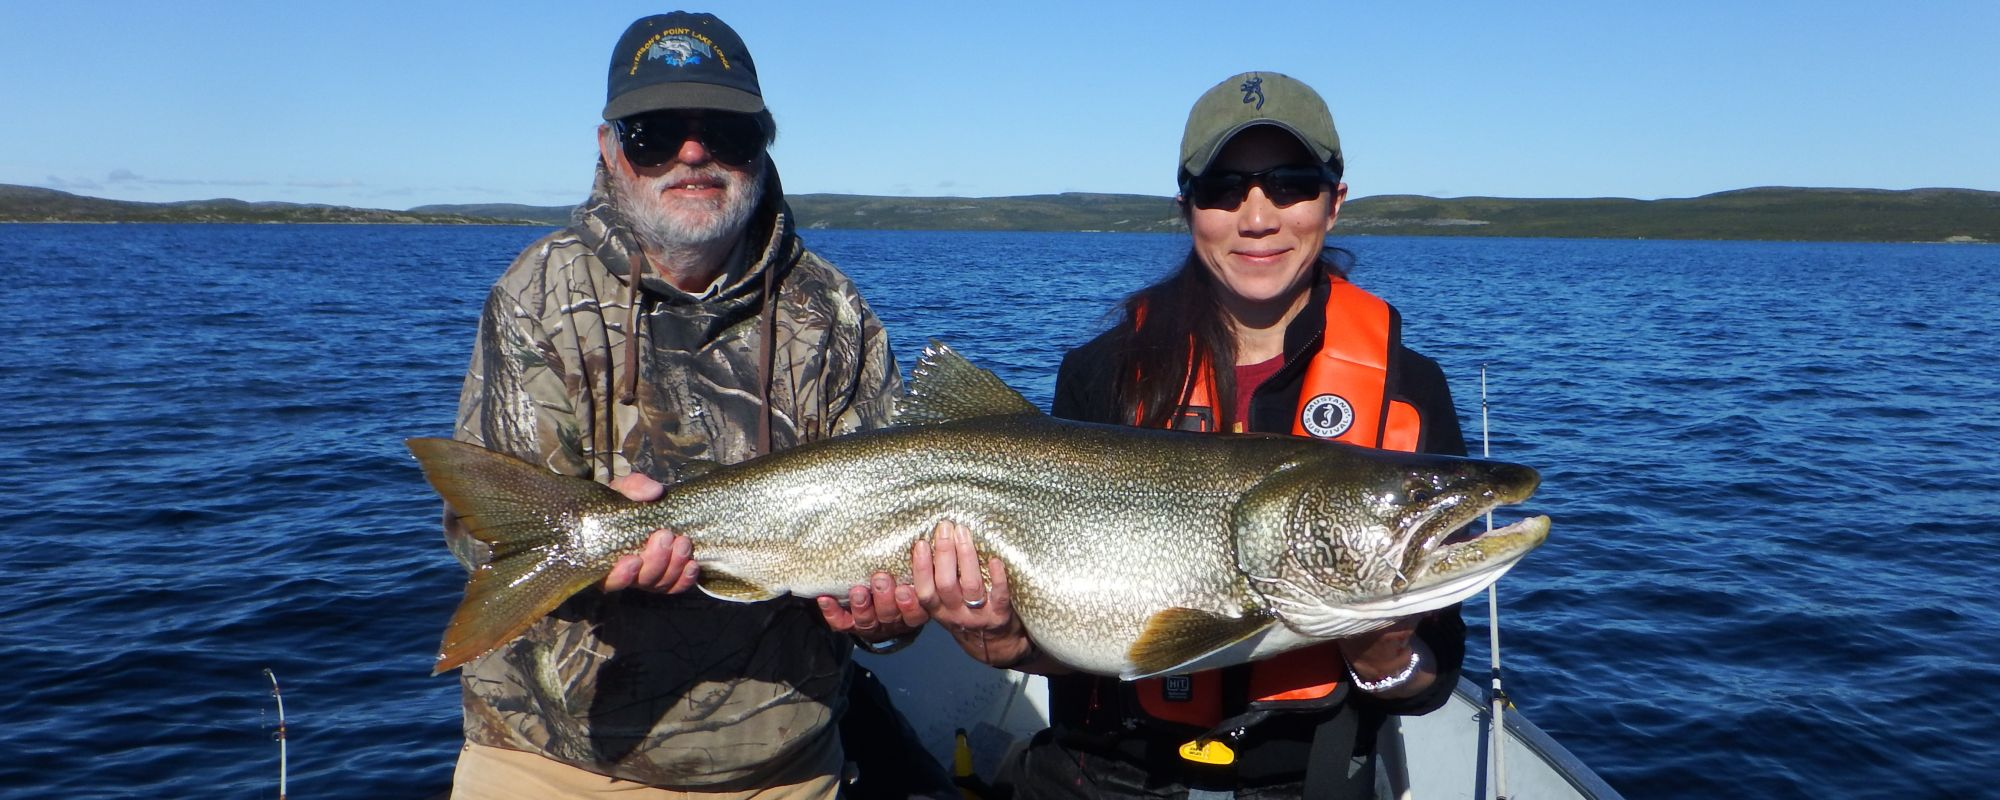 Two Anglers holding giant lake trout